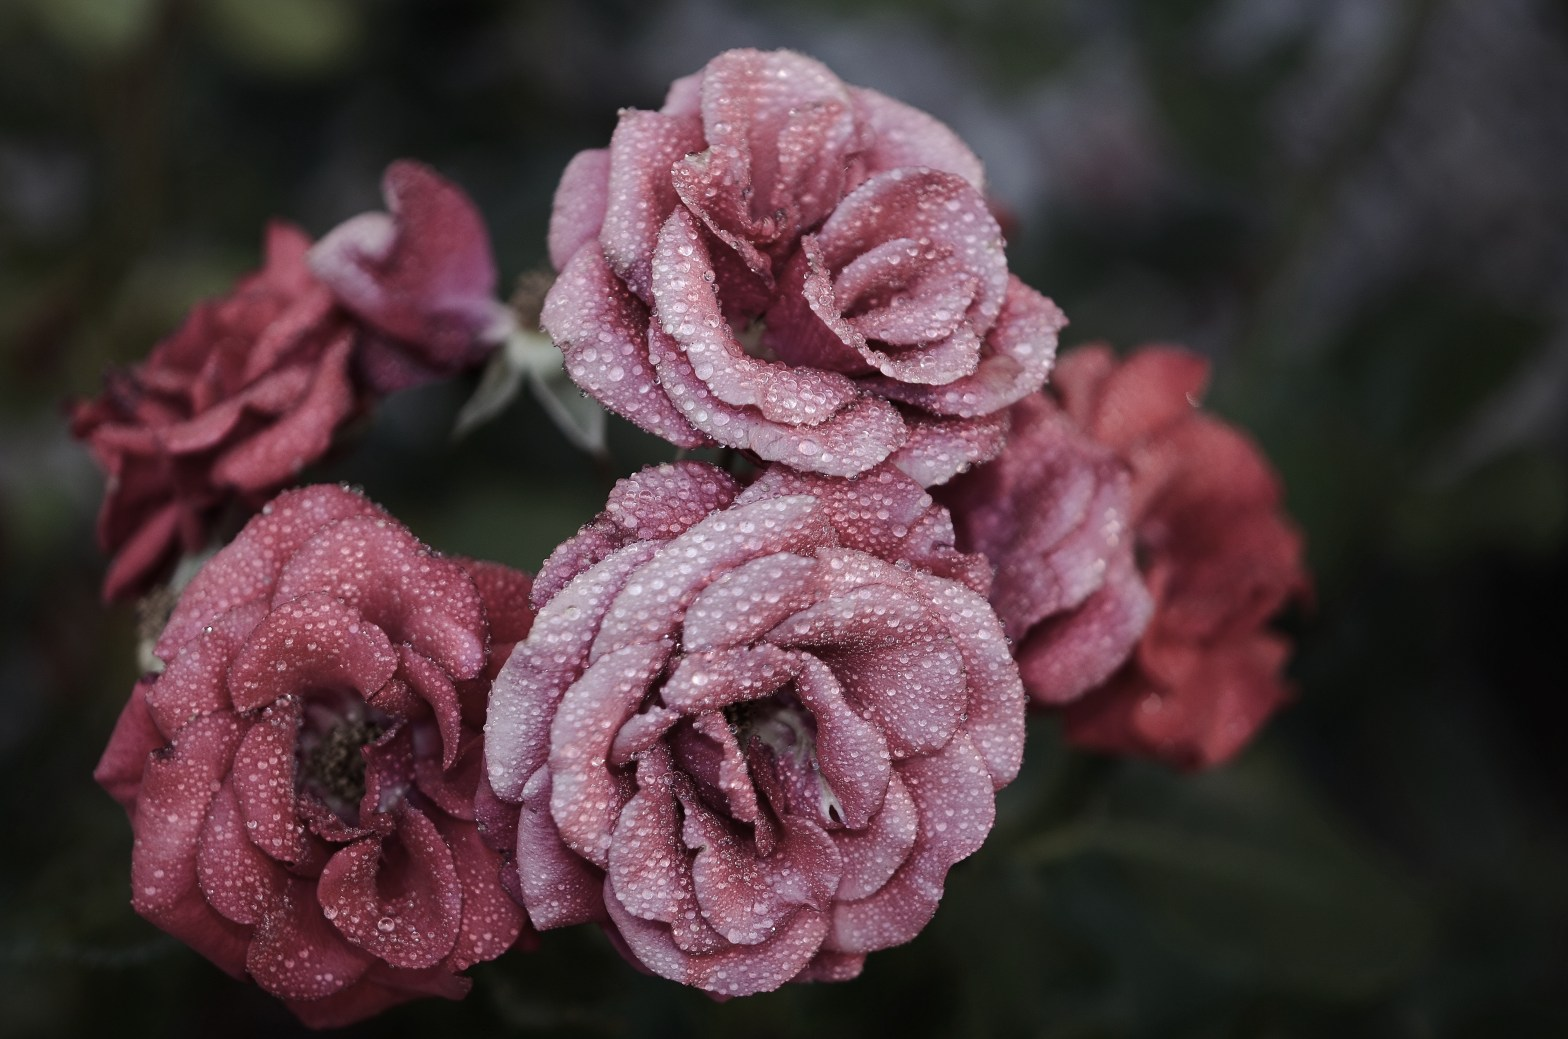 A close-up photograph of dusty red roses bejeweled in dew droplets.